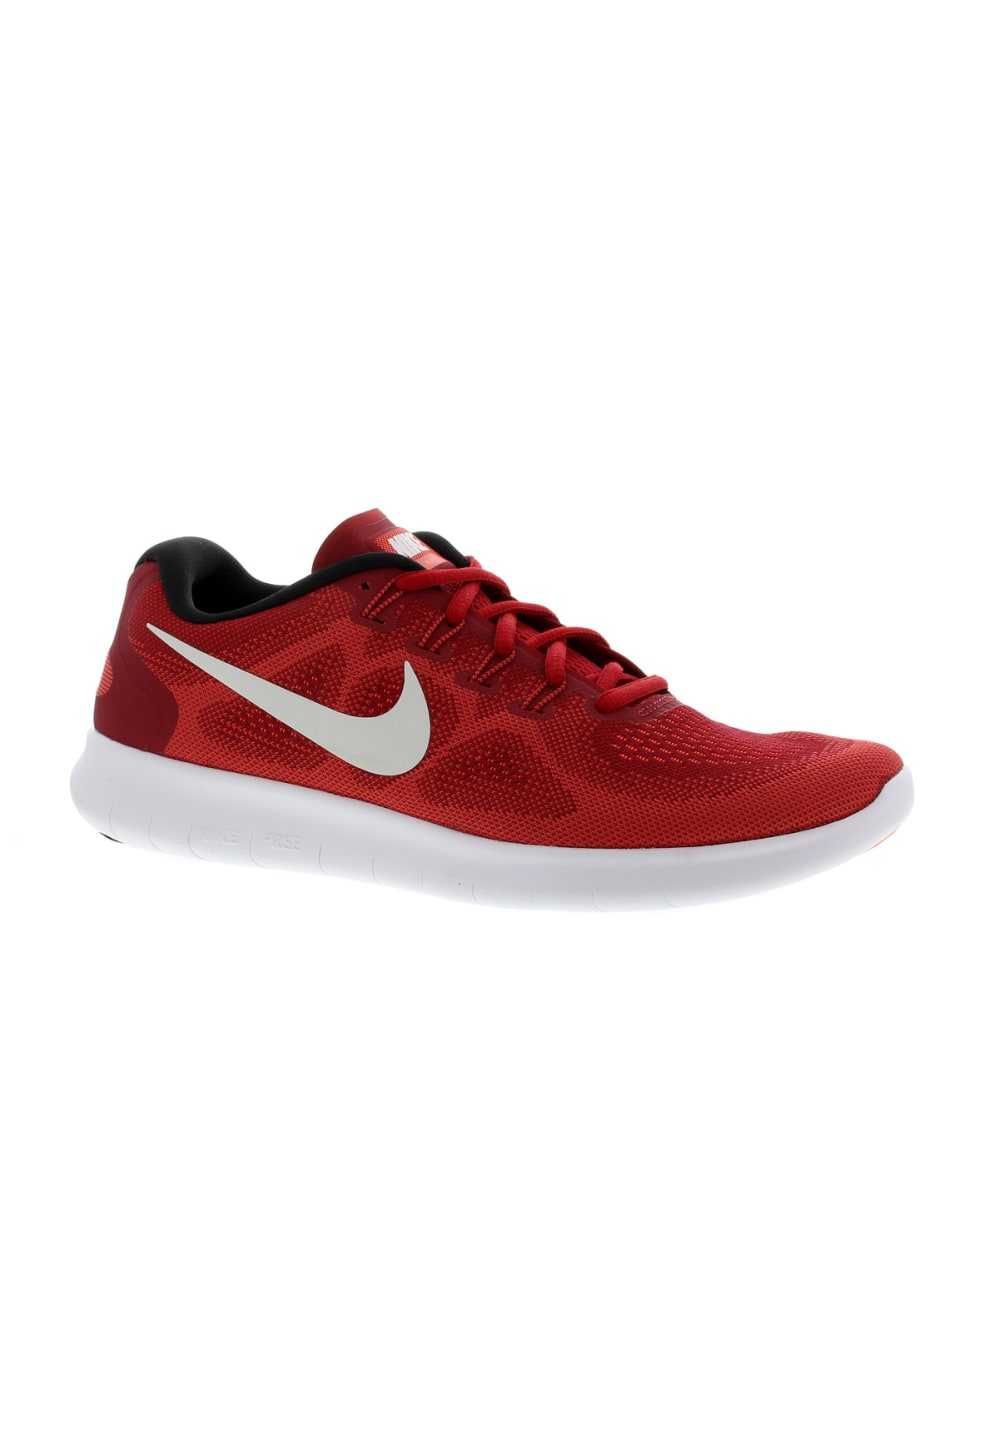 fa735af5b6416 Next. -35%. This product is currently out of stock. Nike. Free RN 2017 - Running  shoes ...